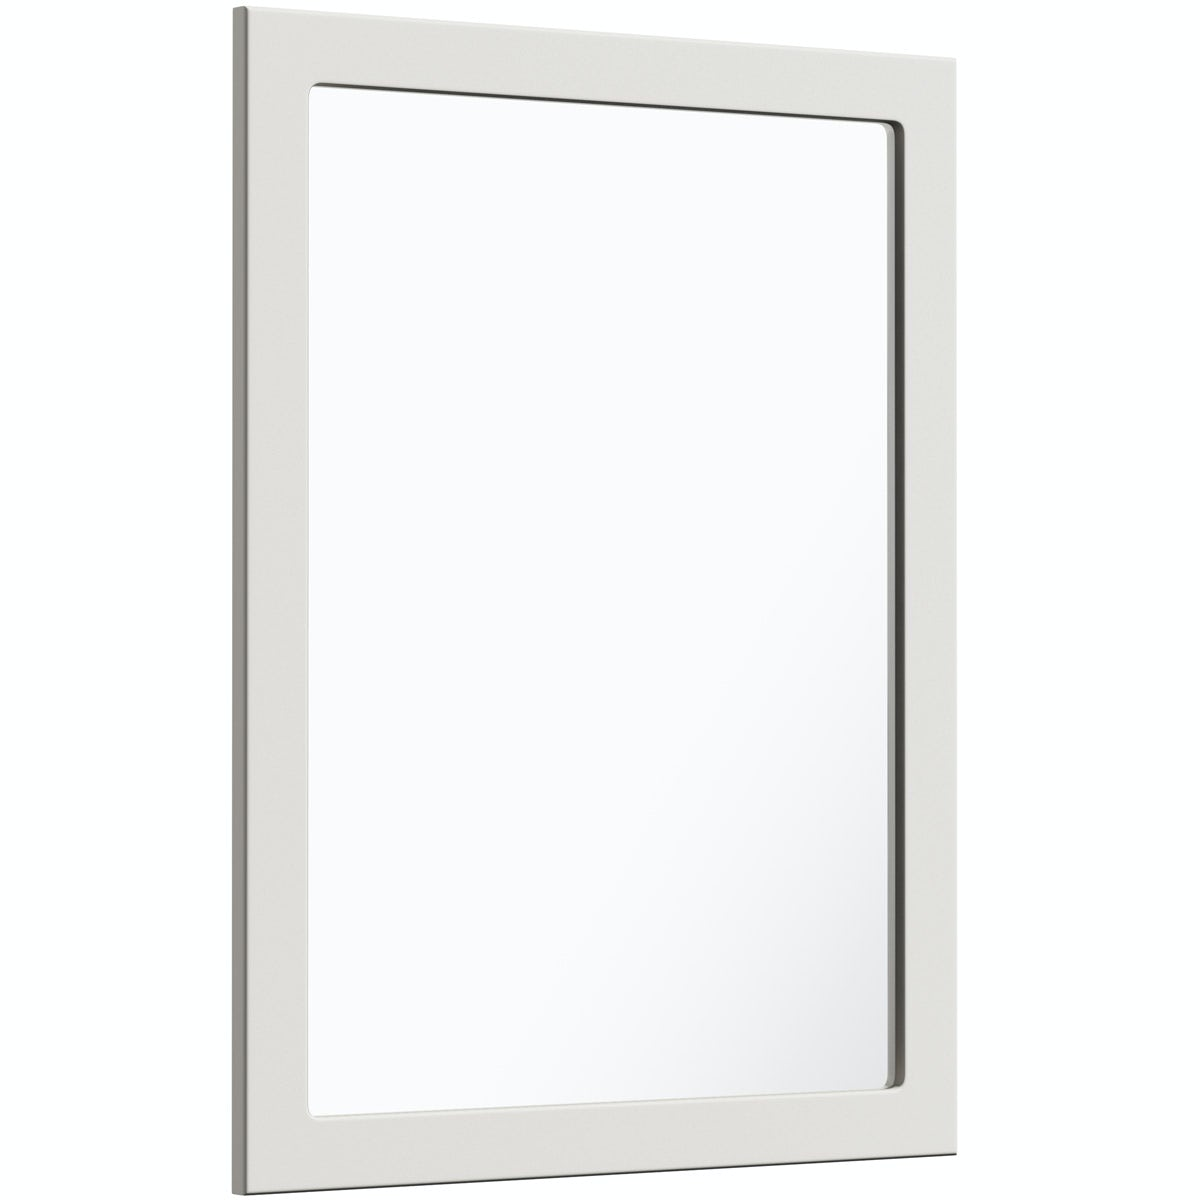 The Bath Co. Dulwich stone ivory mirror 600mm